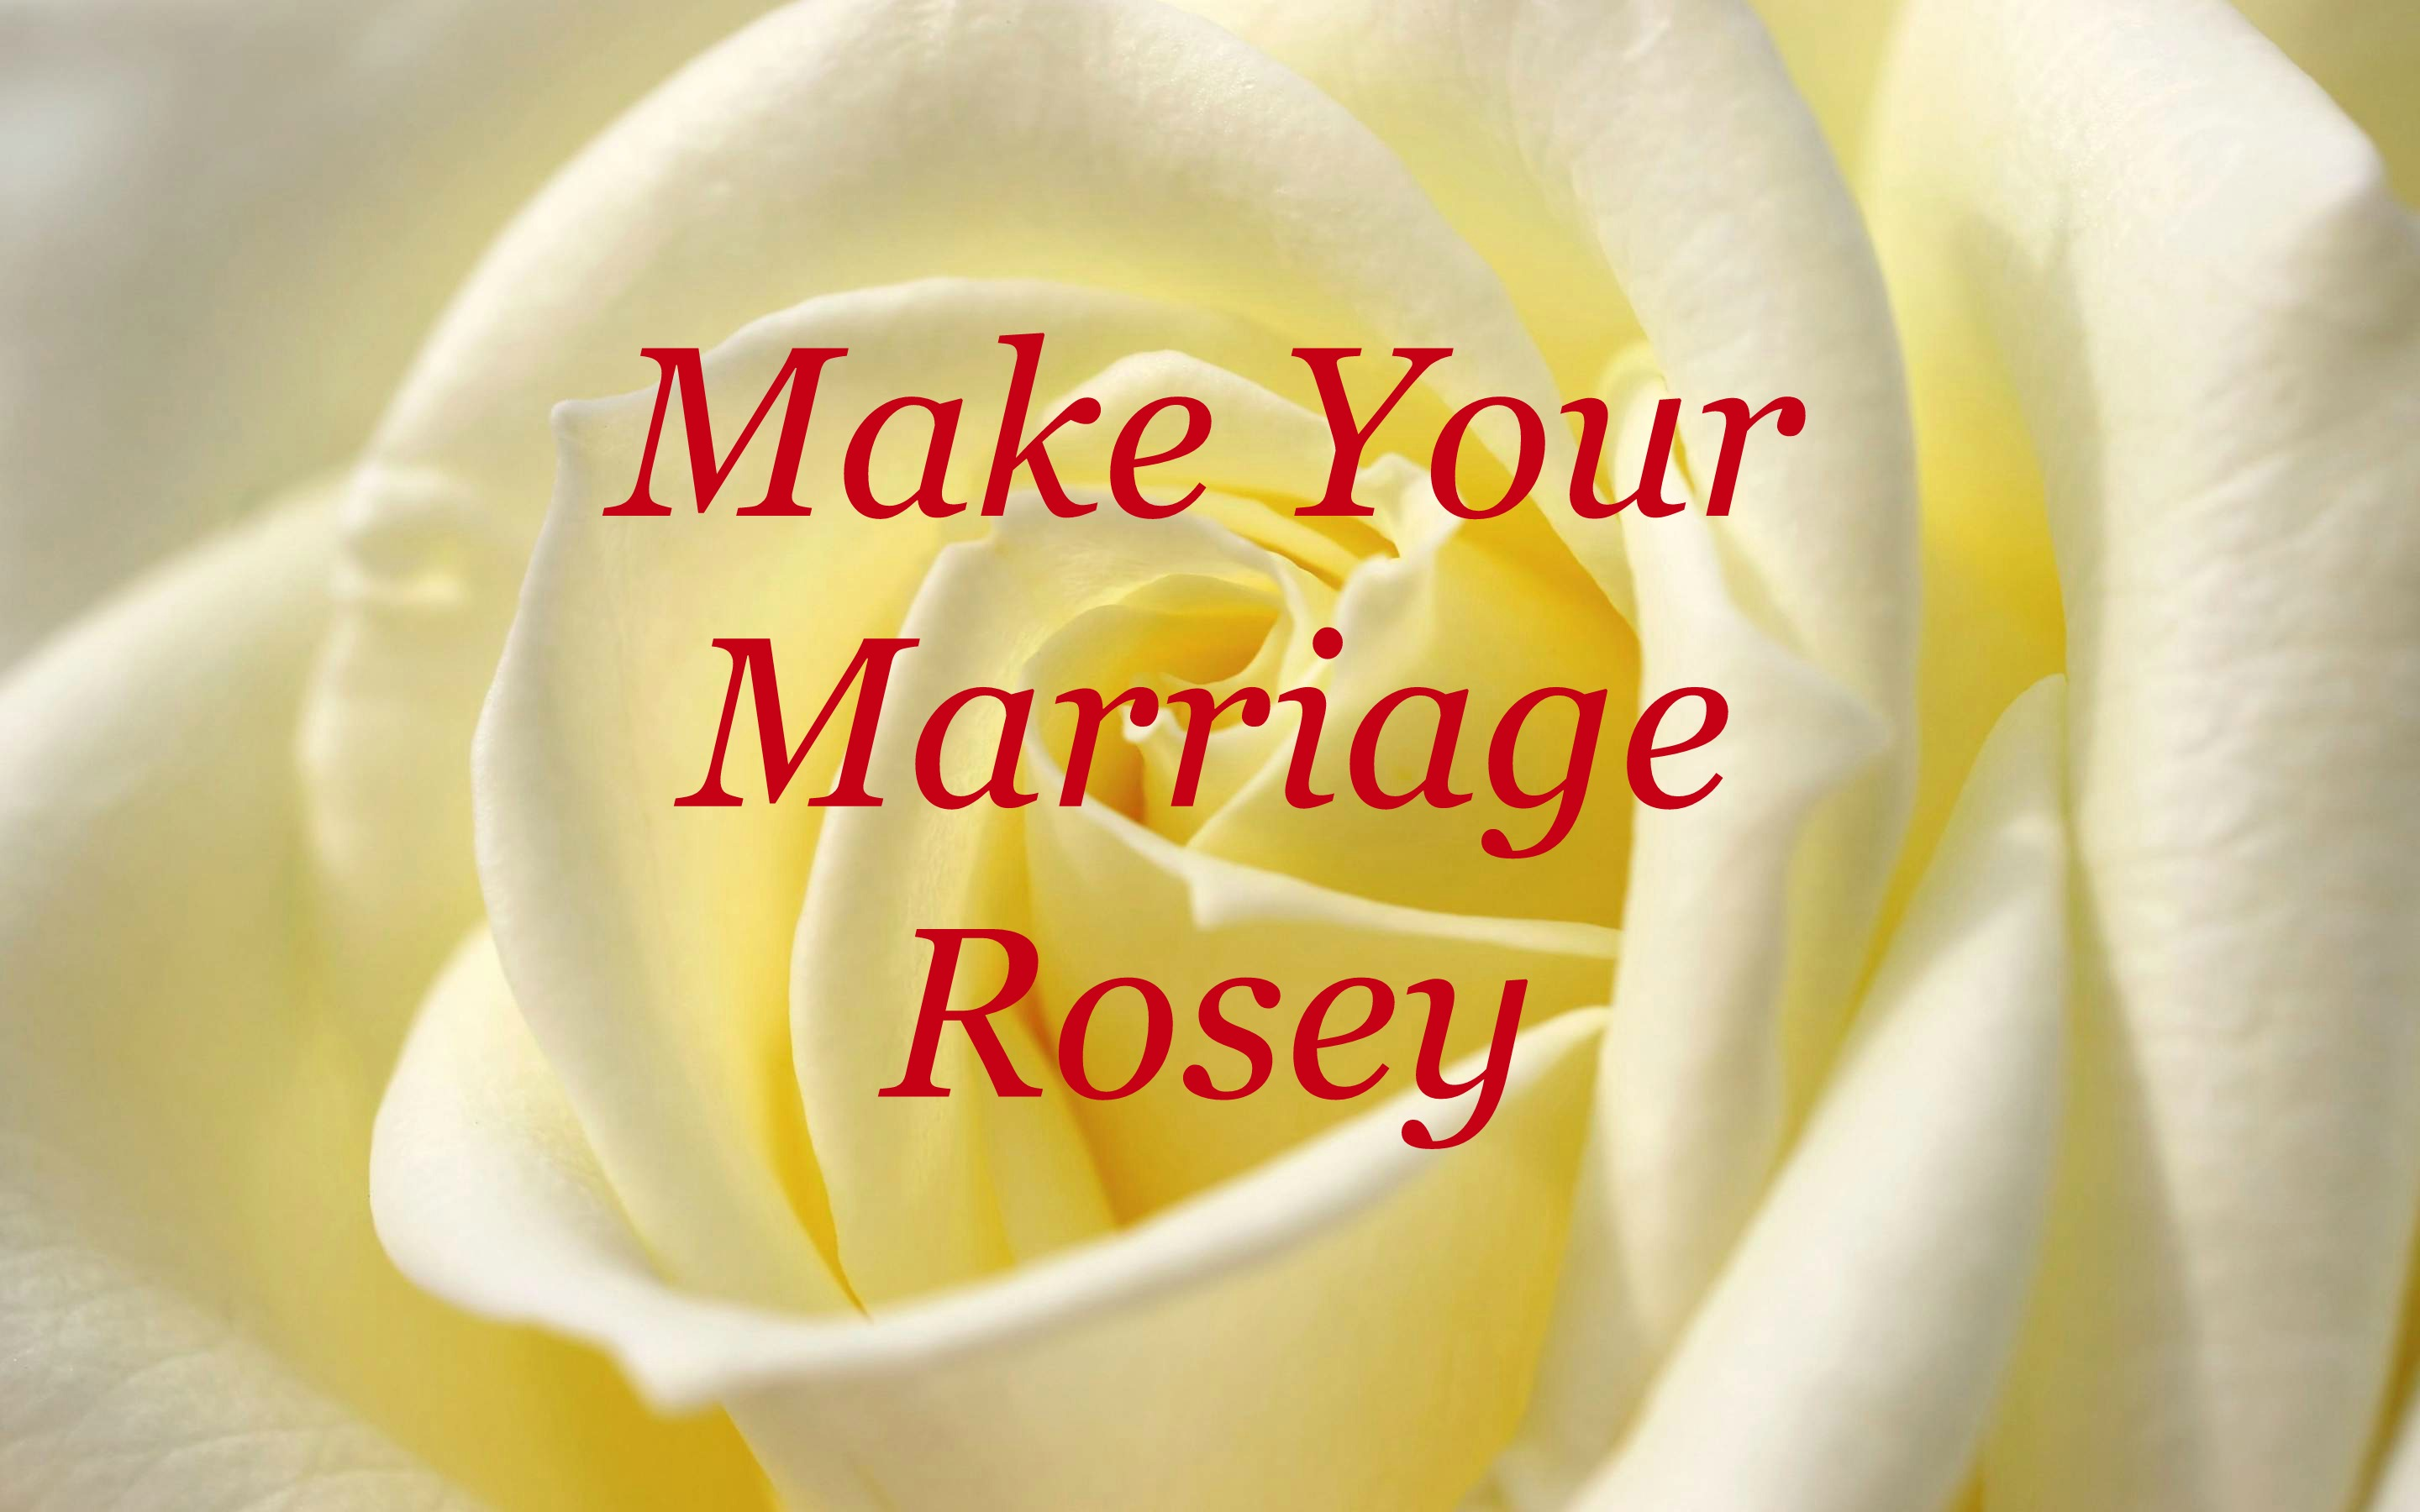 Marriage  To read all of Tudie Rose's article on marriage, click the picture.